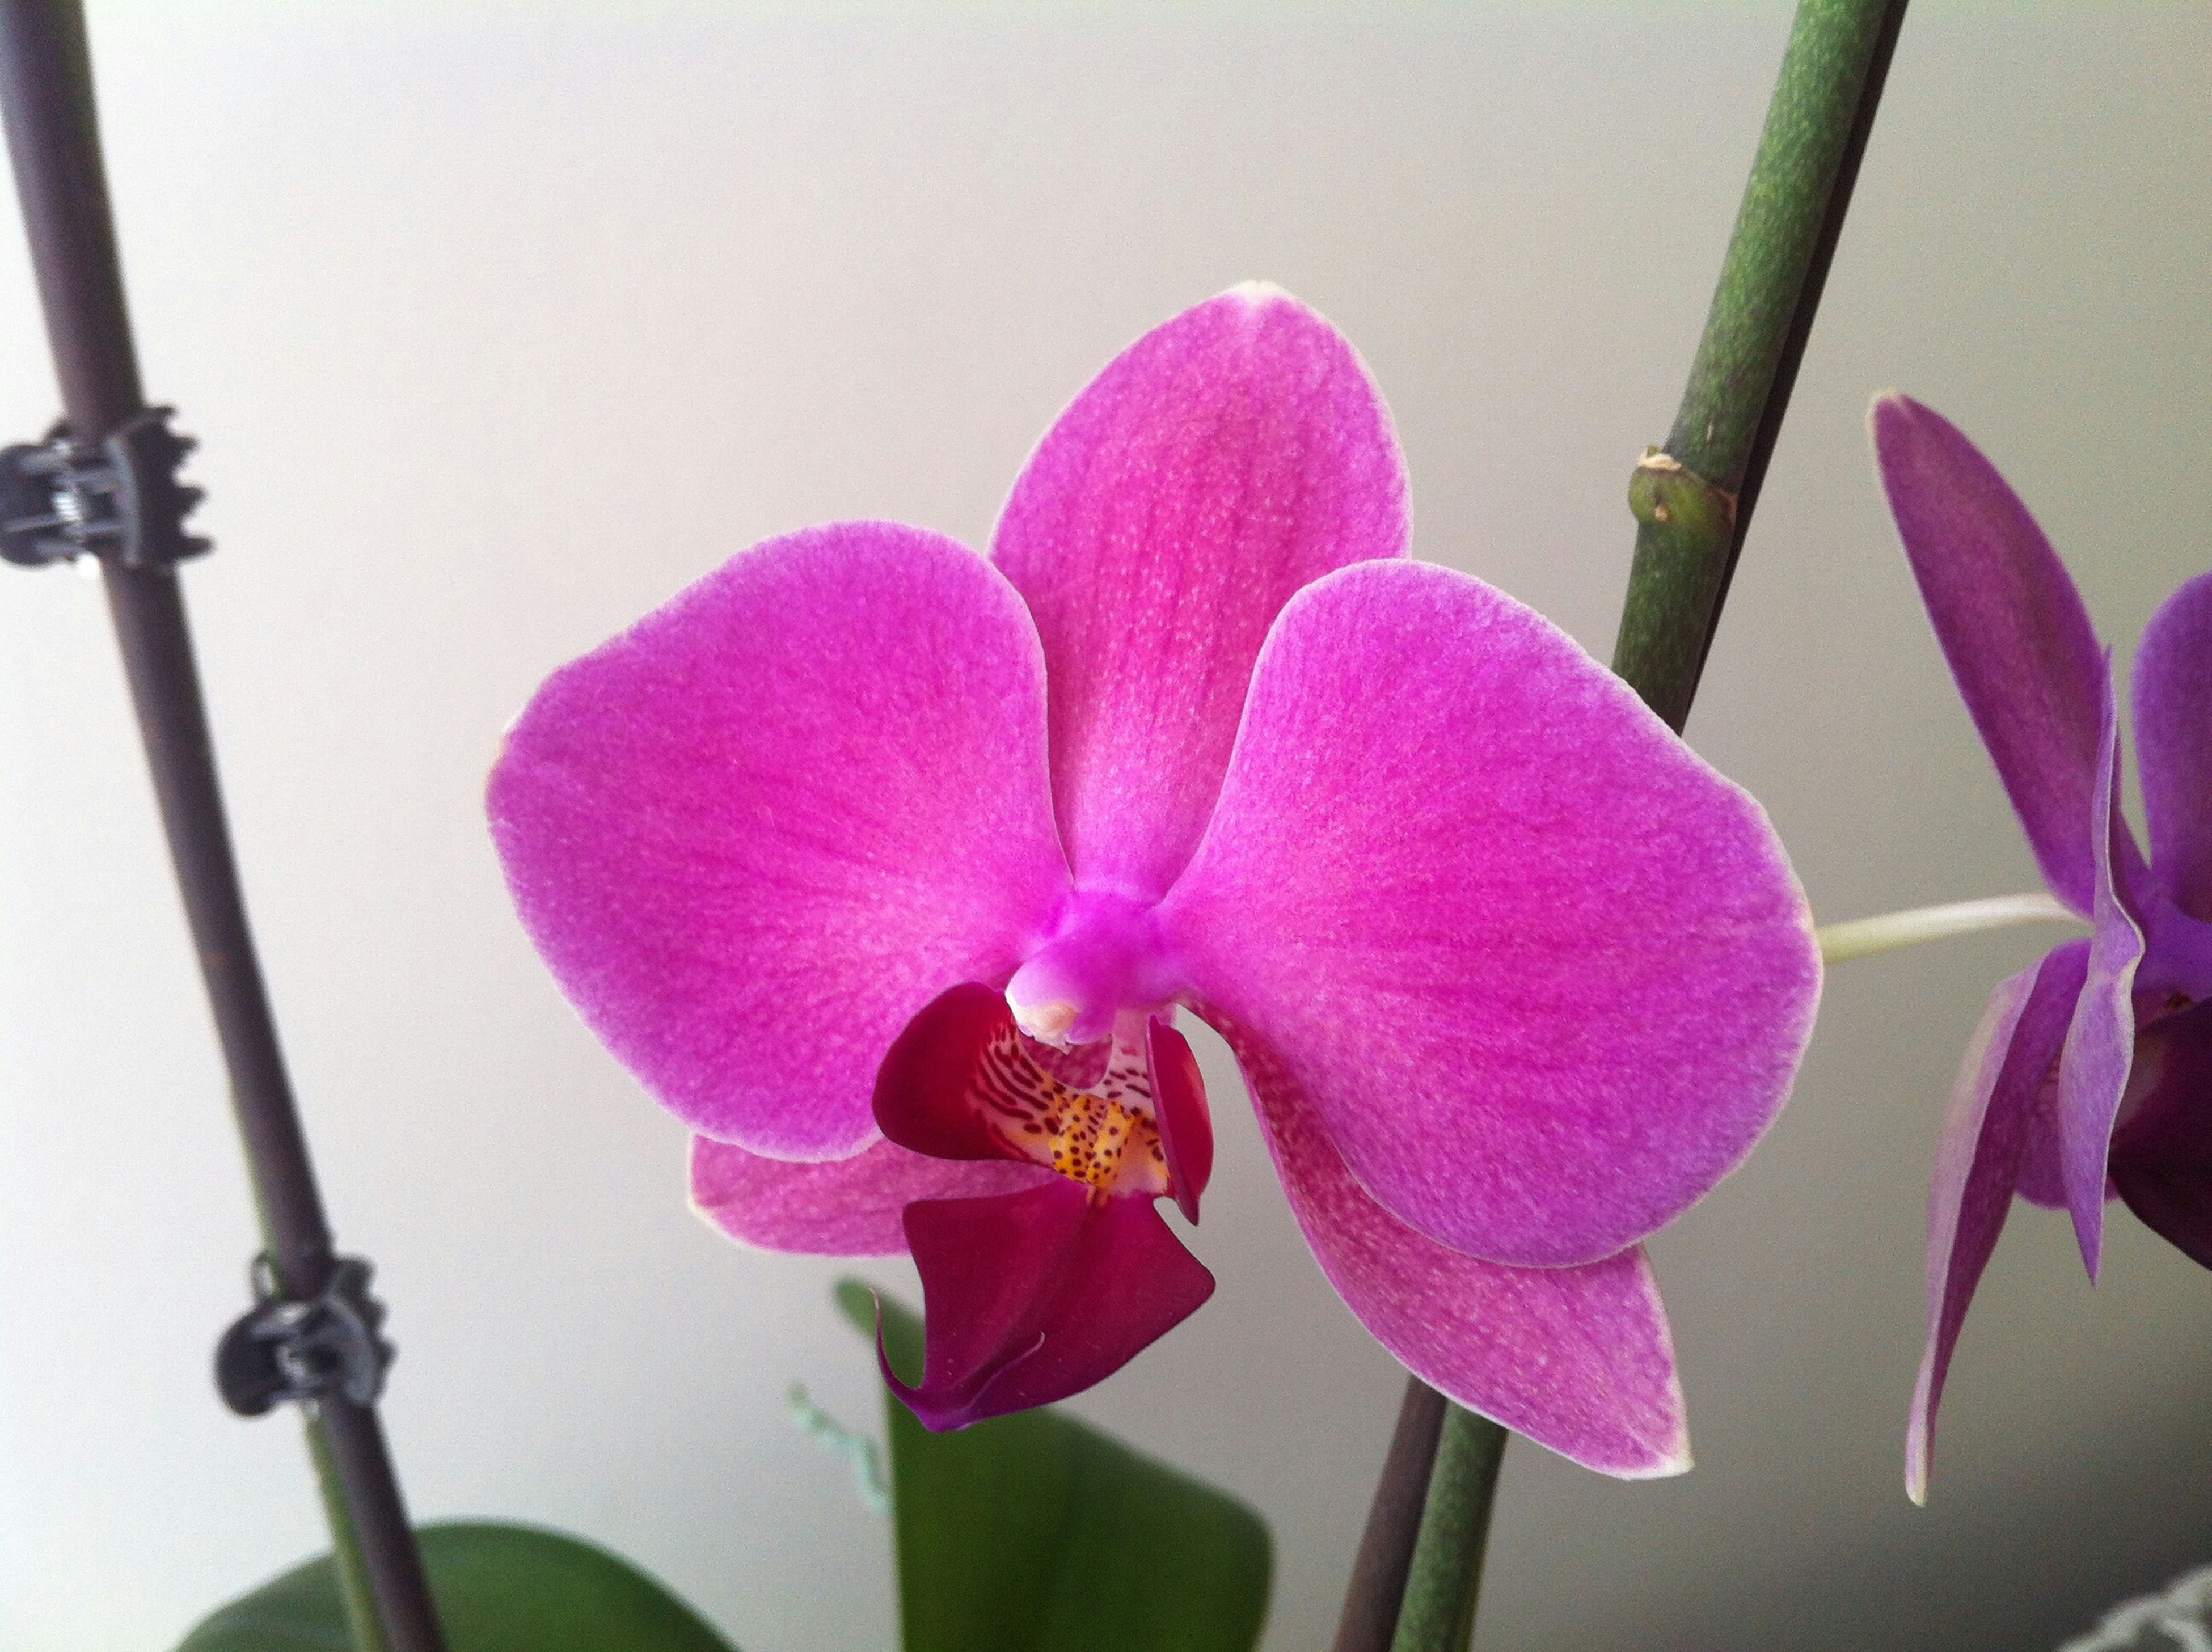 flower, fragility, pink color, petal, freshness, flower head, purple, close-up, indoors, stem, orchid, beauty in nature, growth, nature, focus on foreground, plant, no people, blooming, pink, day